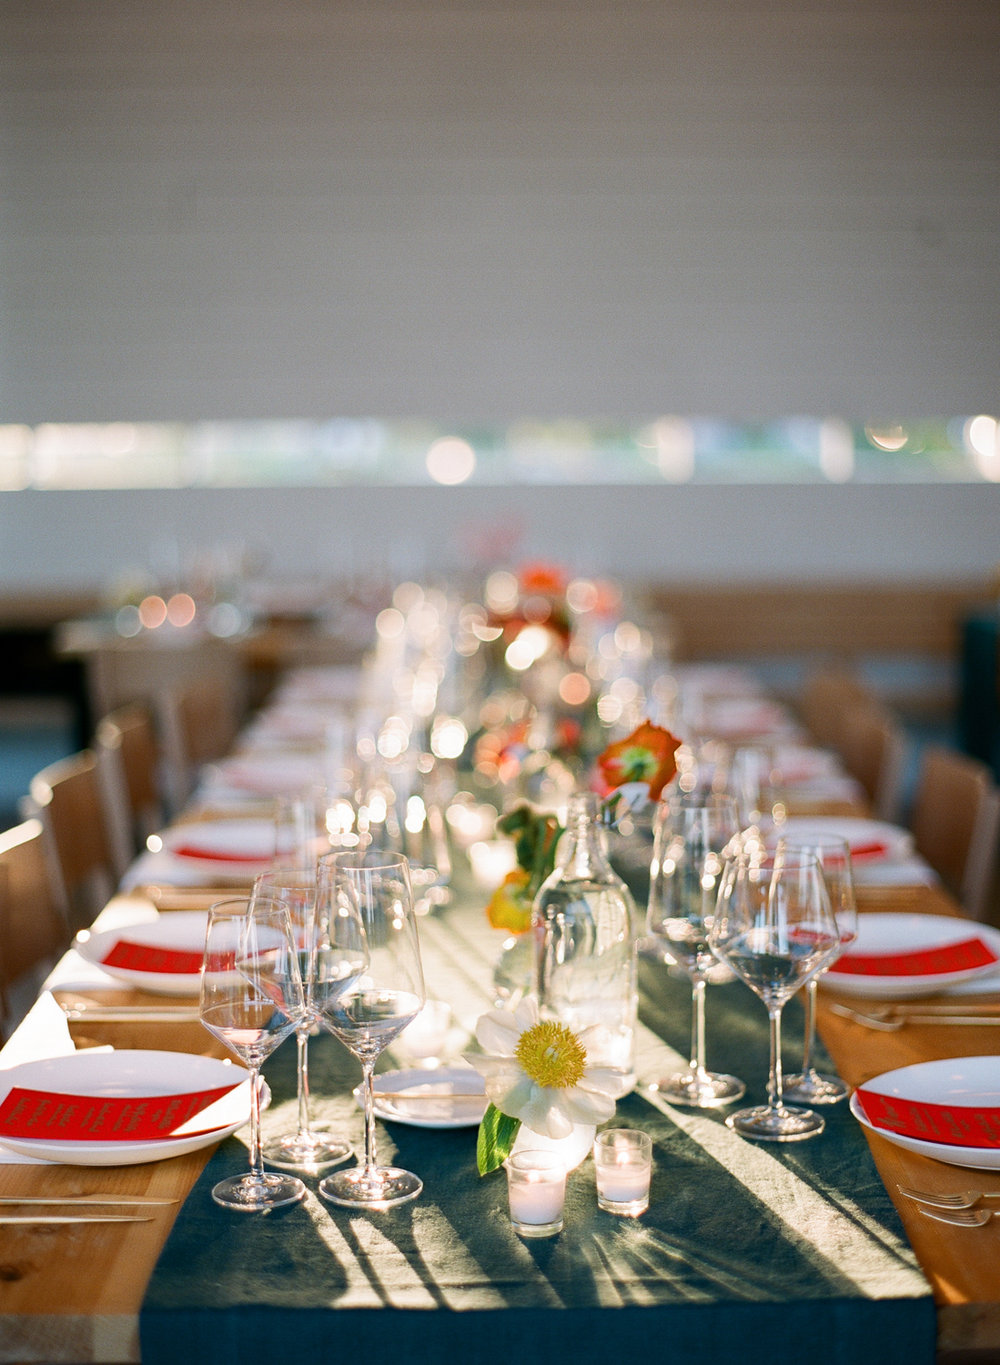 PROSPECT_HOUSE_WEDDING_AUSTIN_TX_BY_MATTHEW_MOORE_PHOTOGRAPHY_00555.jpg